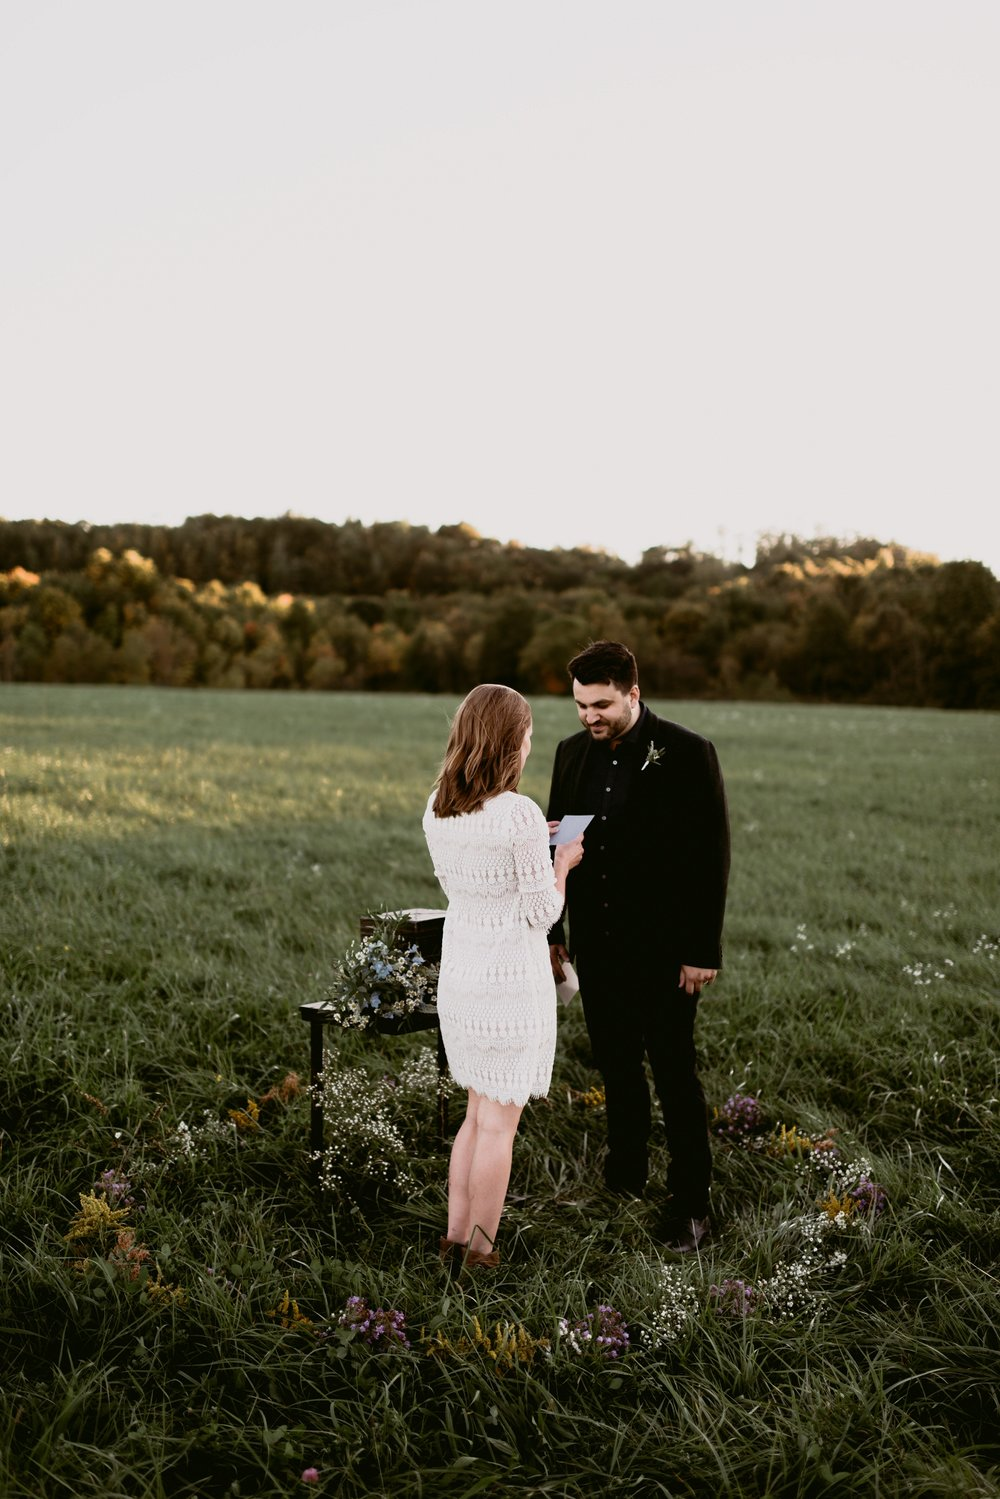 Wildflower-Field-Elopement-Vow-Renewal_Lisa+Chad_MJPHOTO-165.JPG